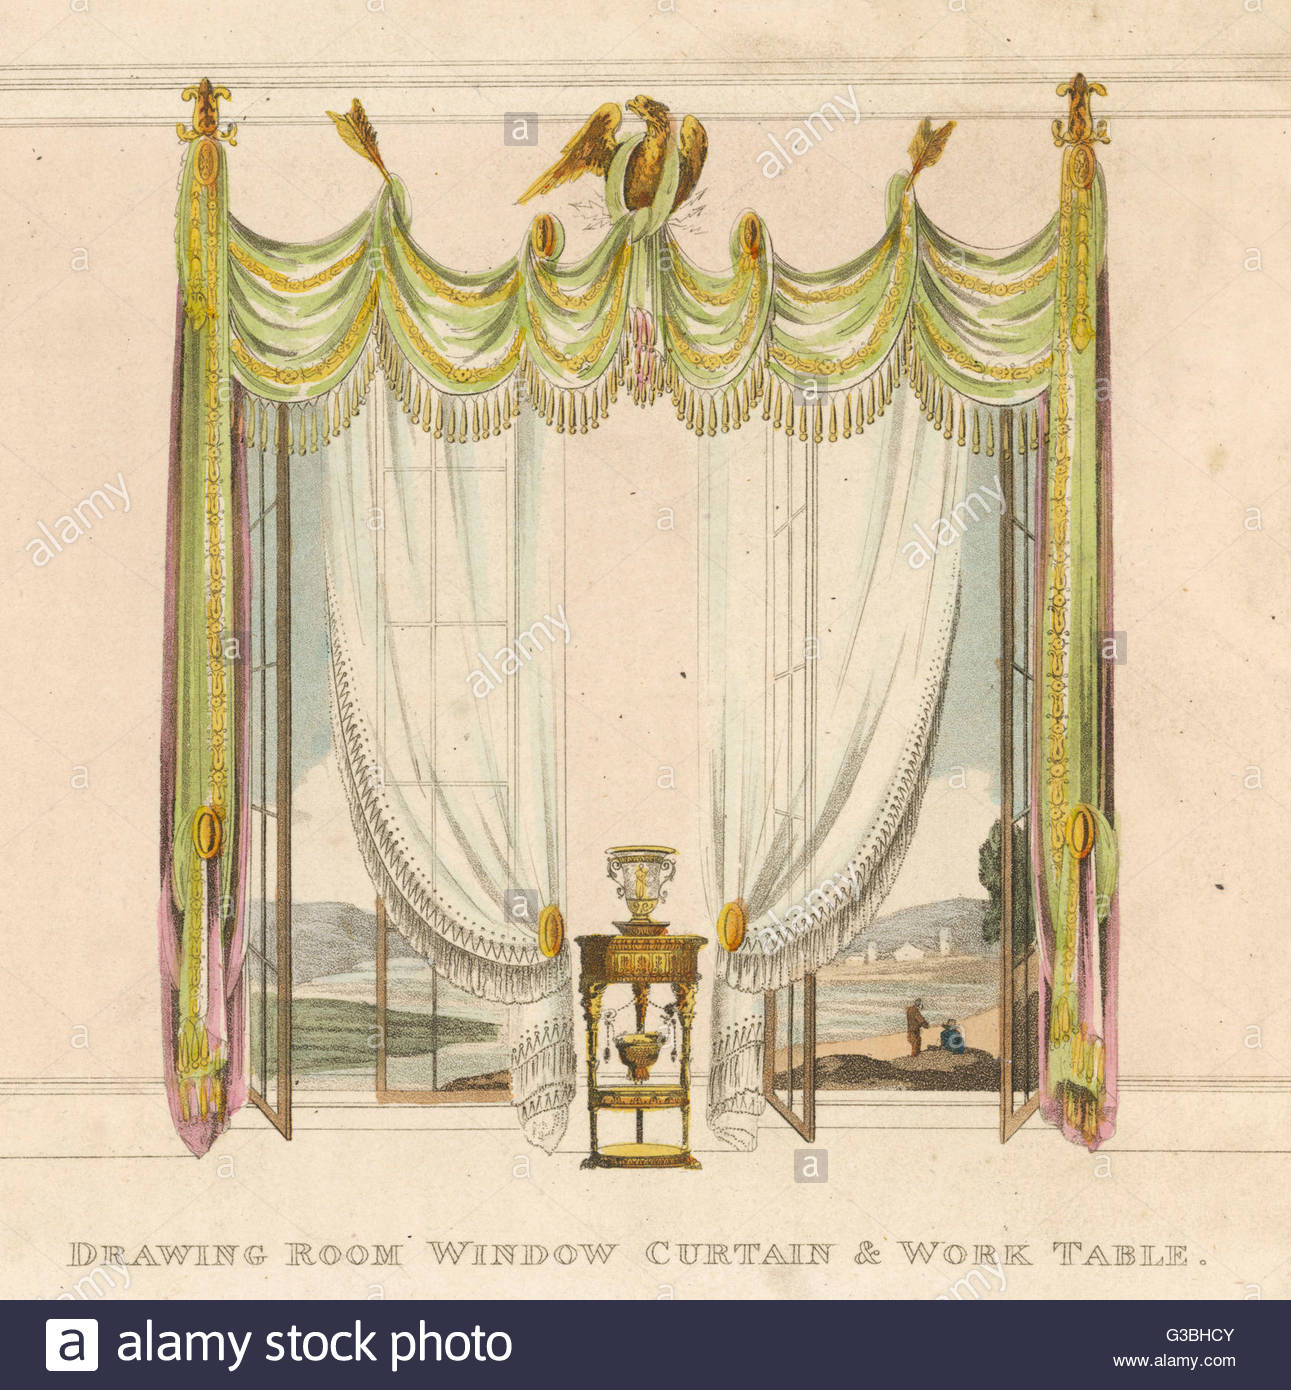 1291x1390 DRAWING ROOM WINDOW CURTAINS in the classical style, with bird and